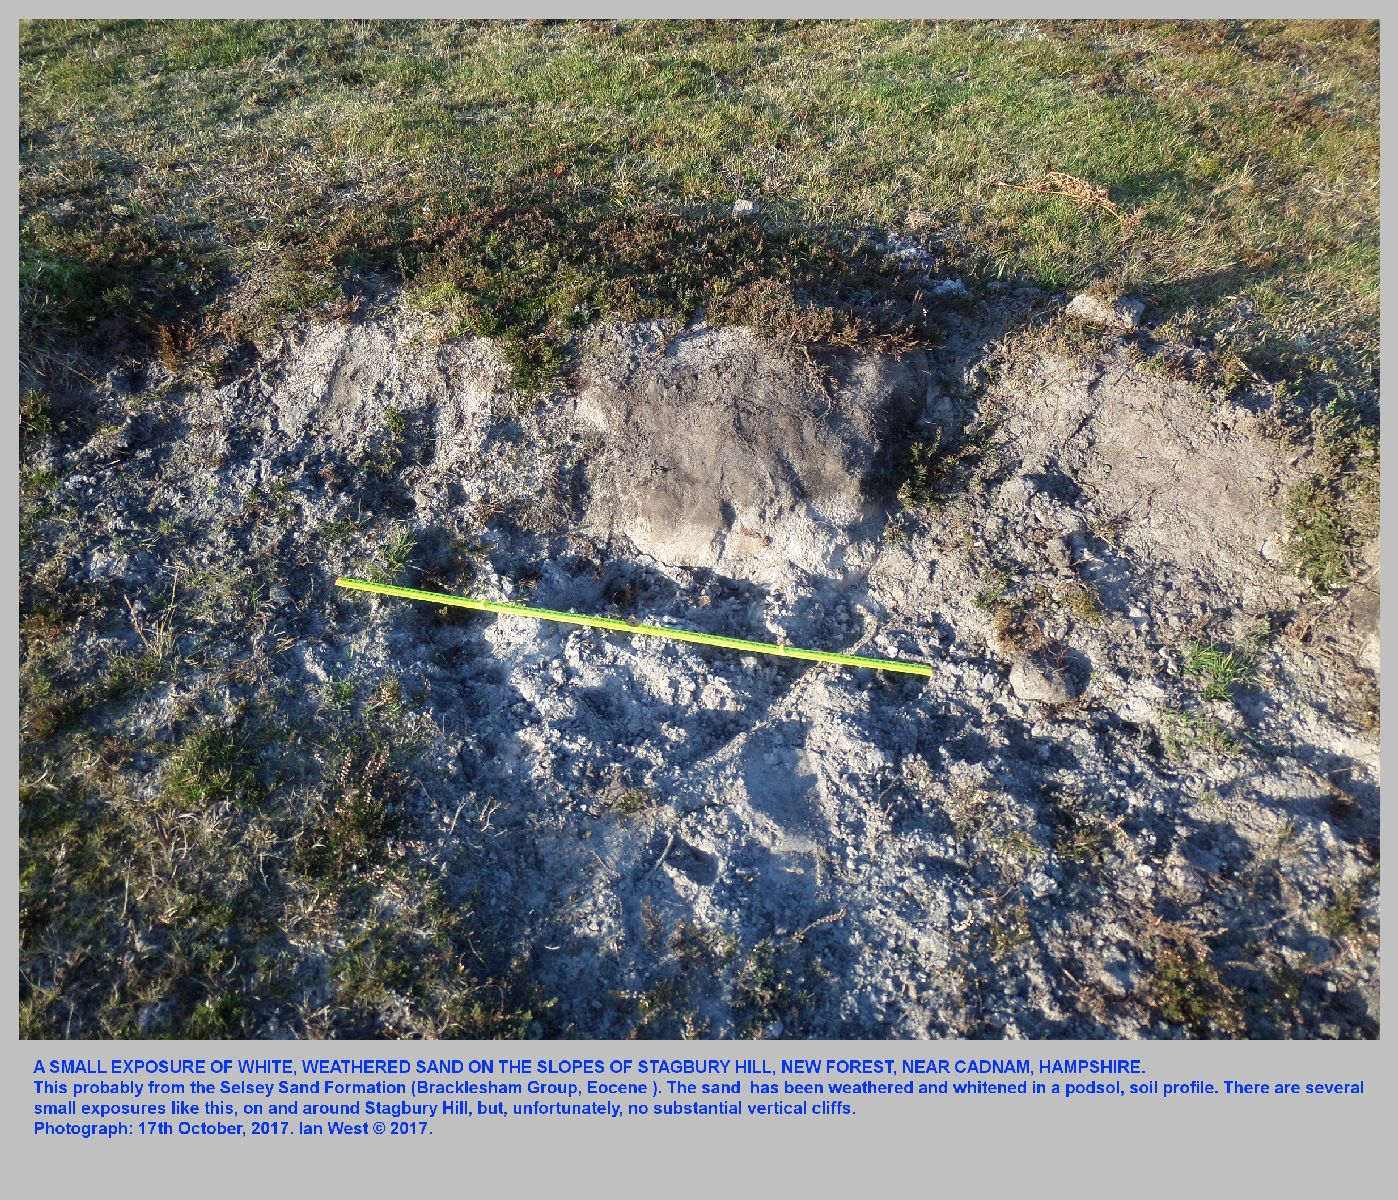 A small exposure of the sand of the Selsey Formation at Stagbury Hill, near Cadnam, New Forest